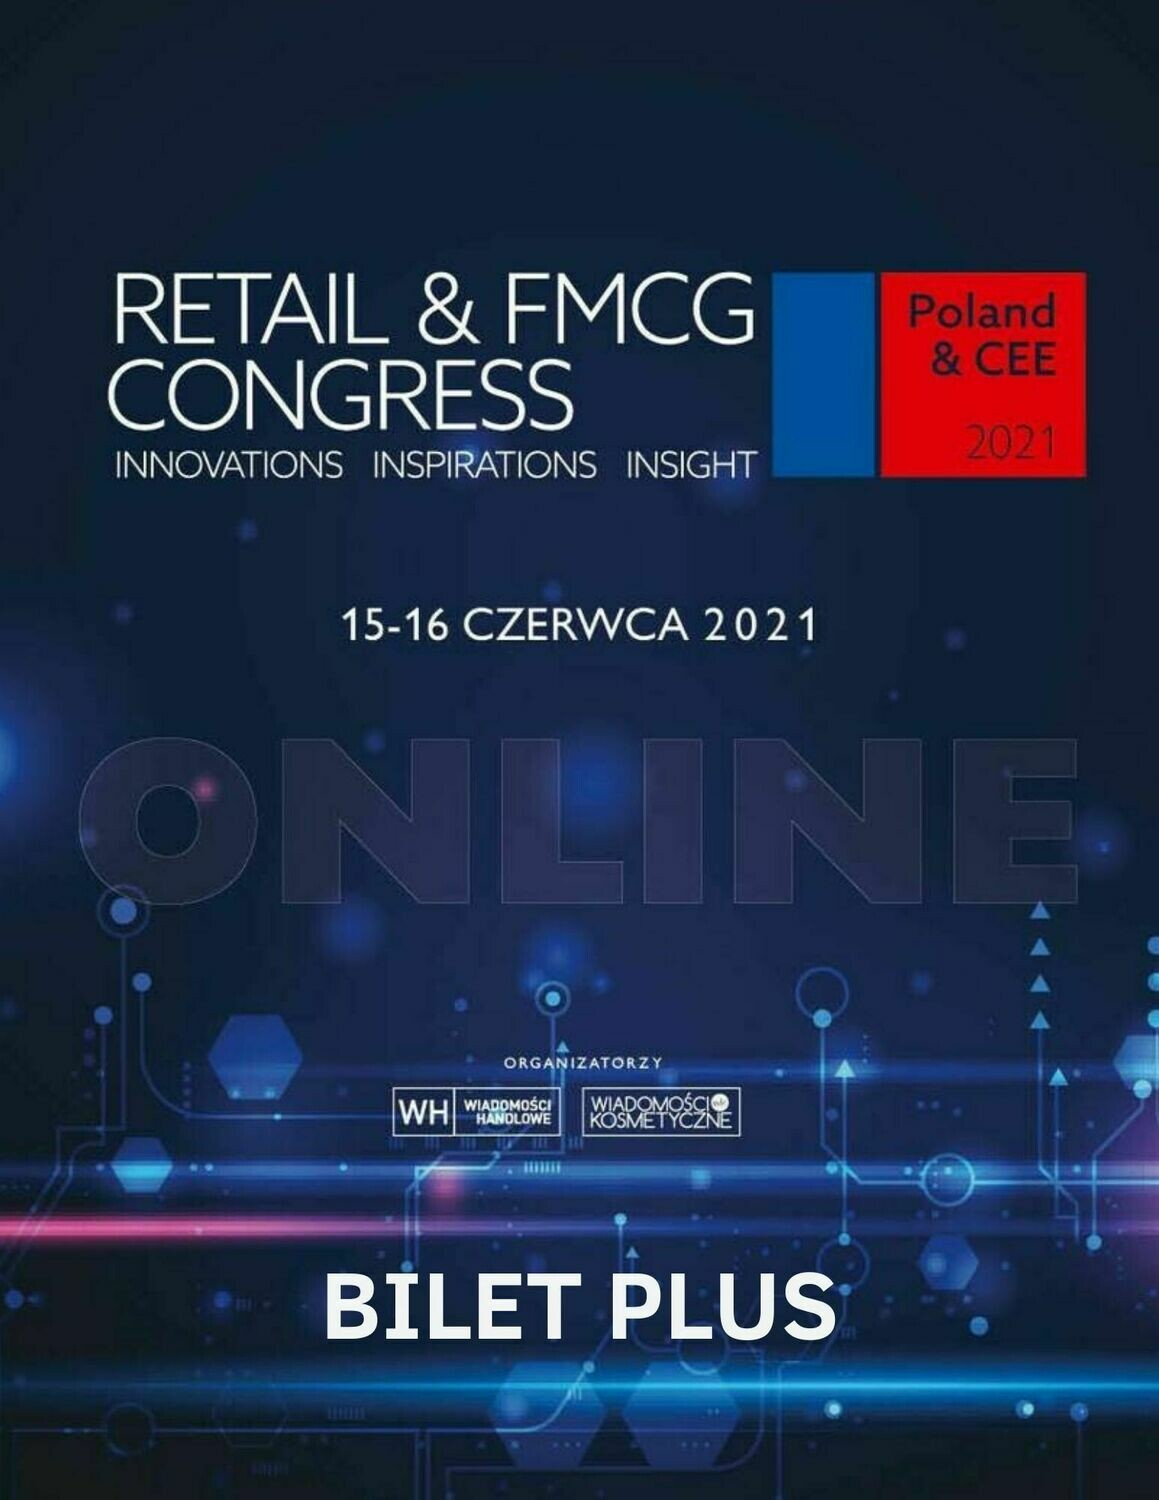 Retail & FMCG Congress 2021 Bilet PLUS